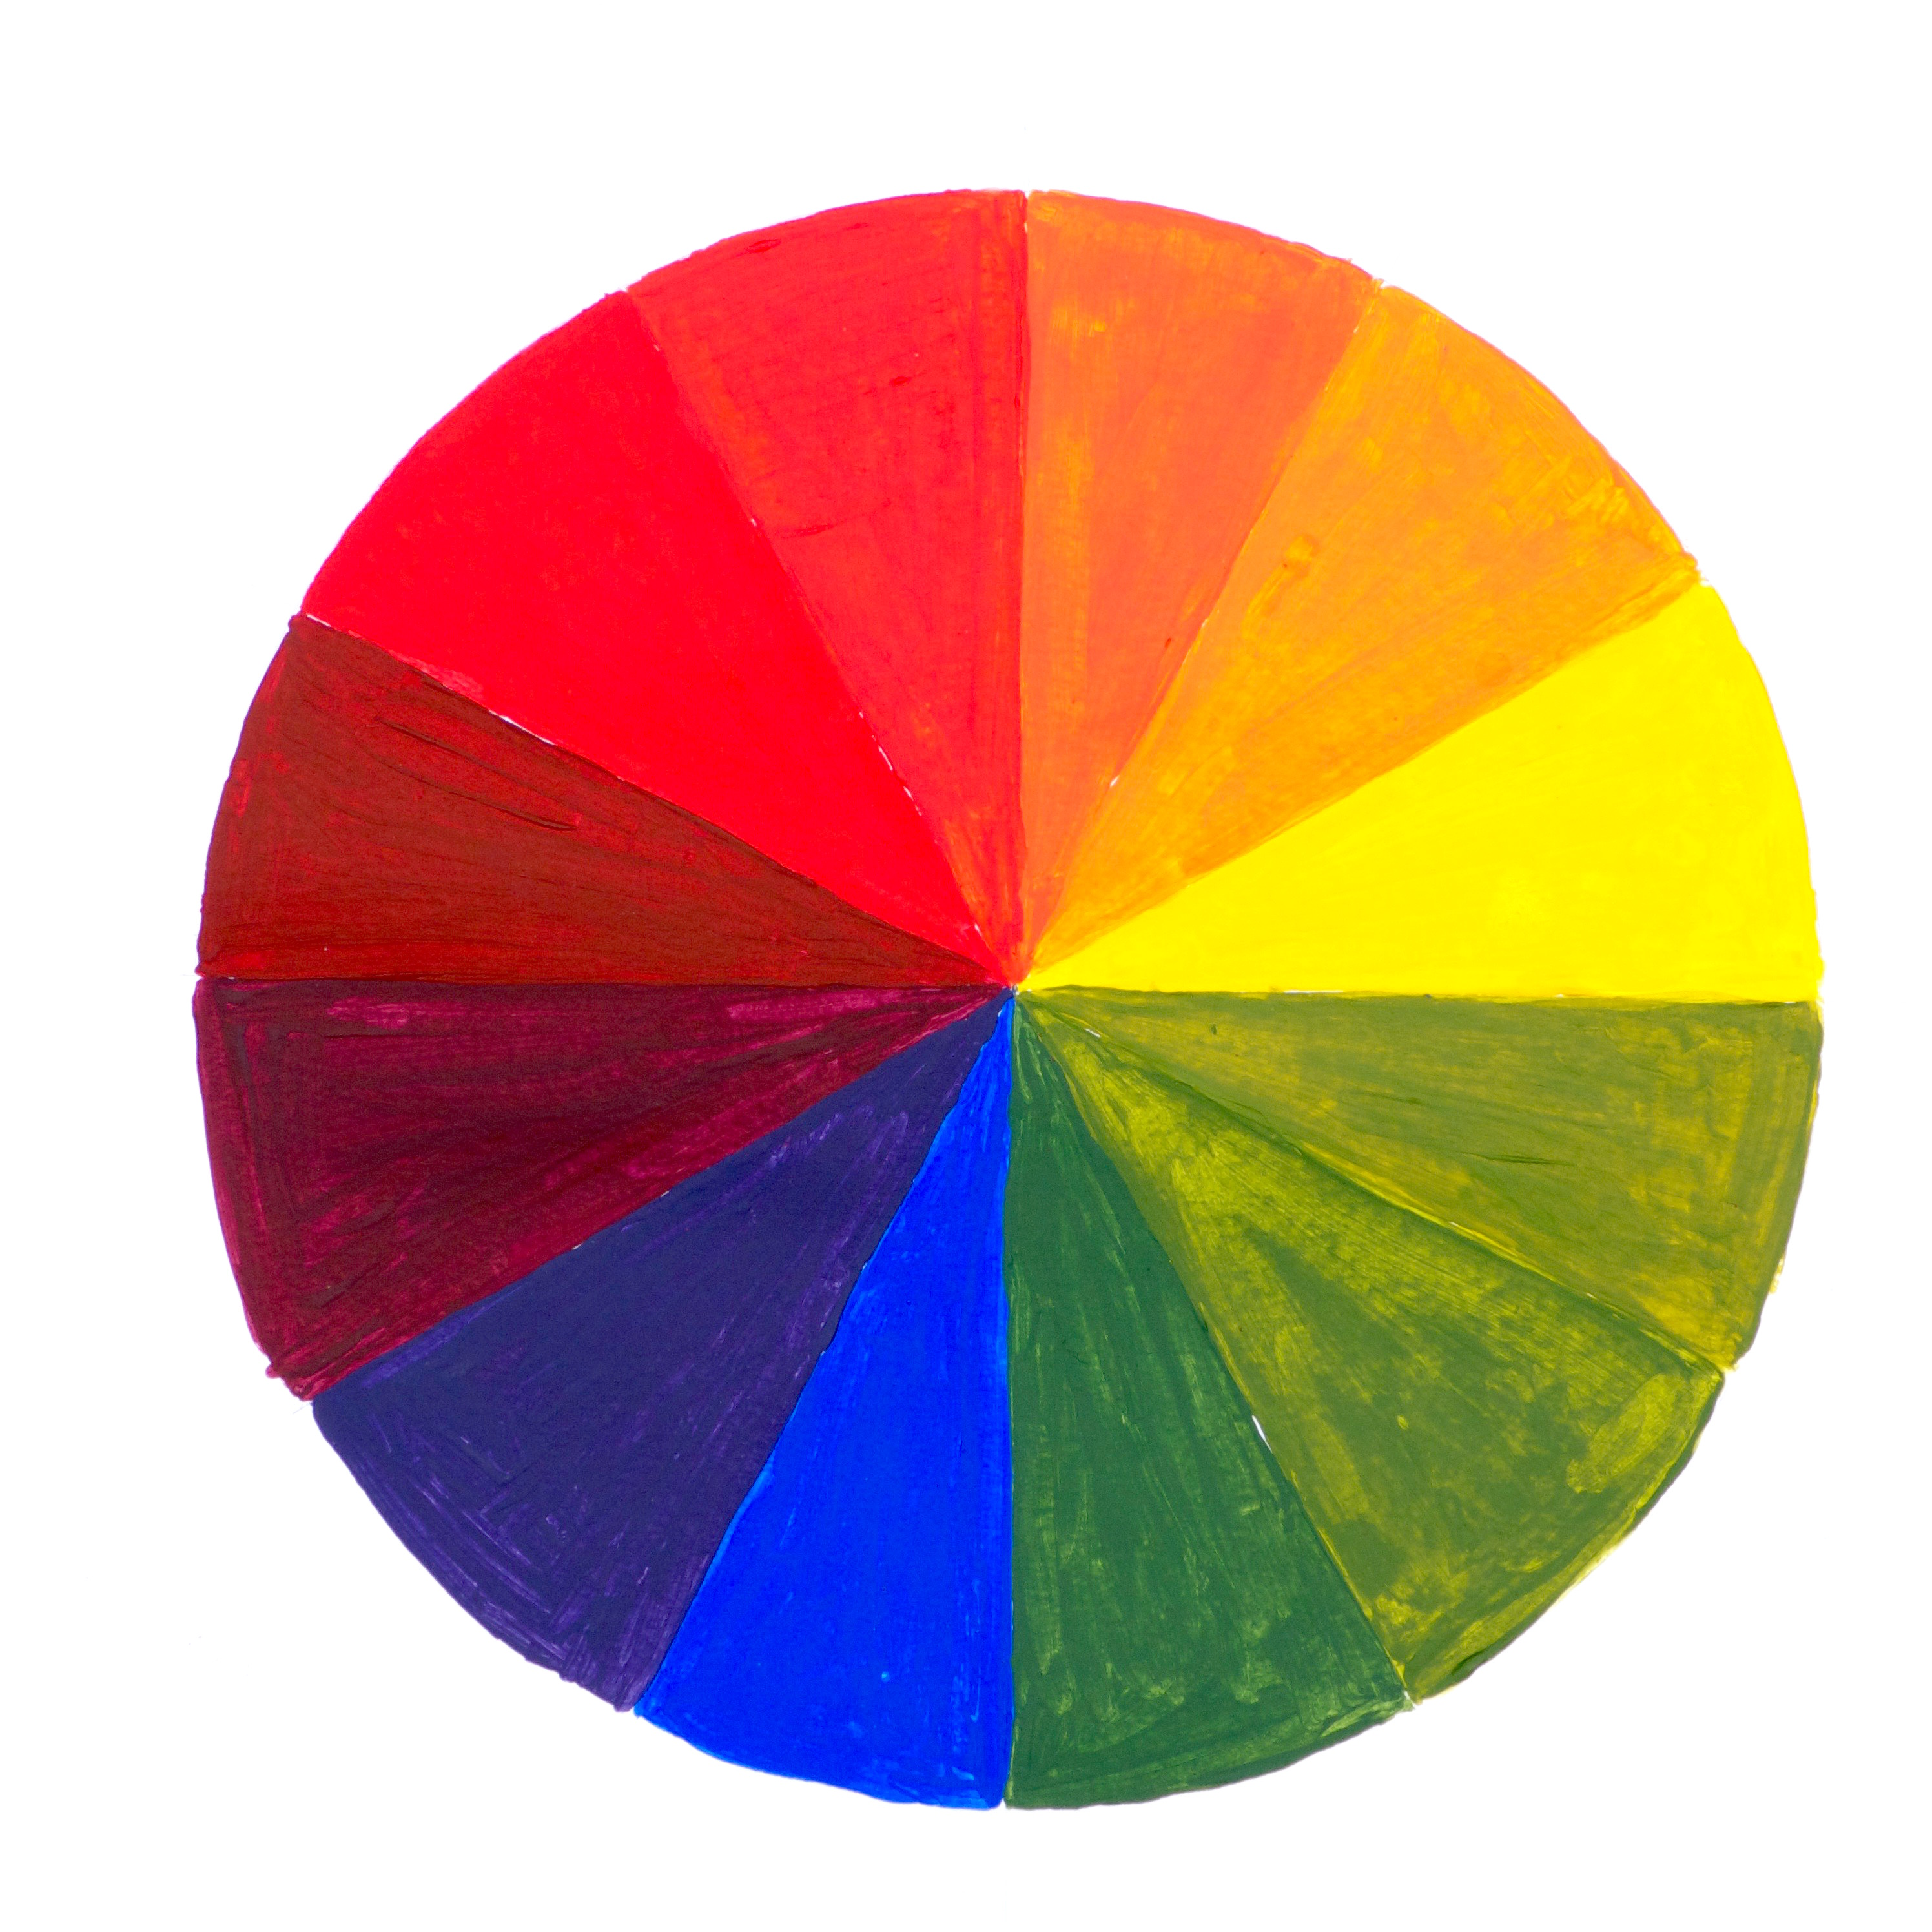 Liz West Our Colour Wheel 2016 17 Image Credit